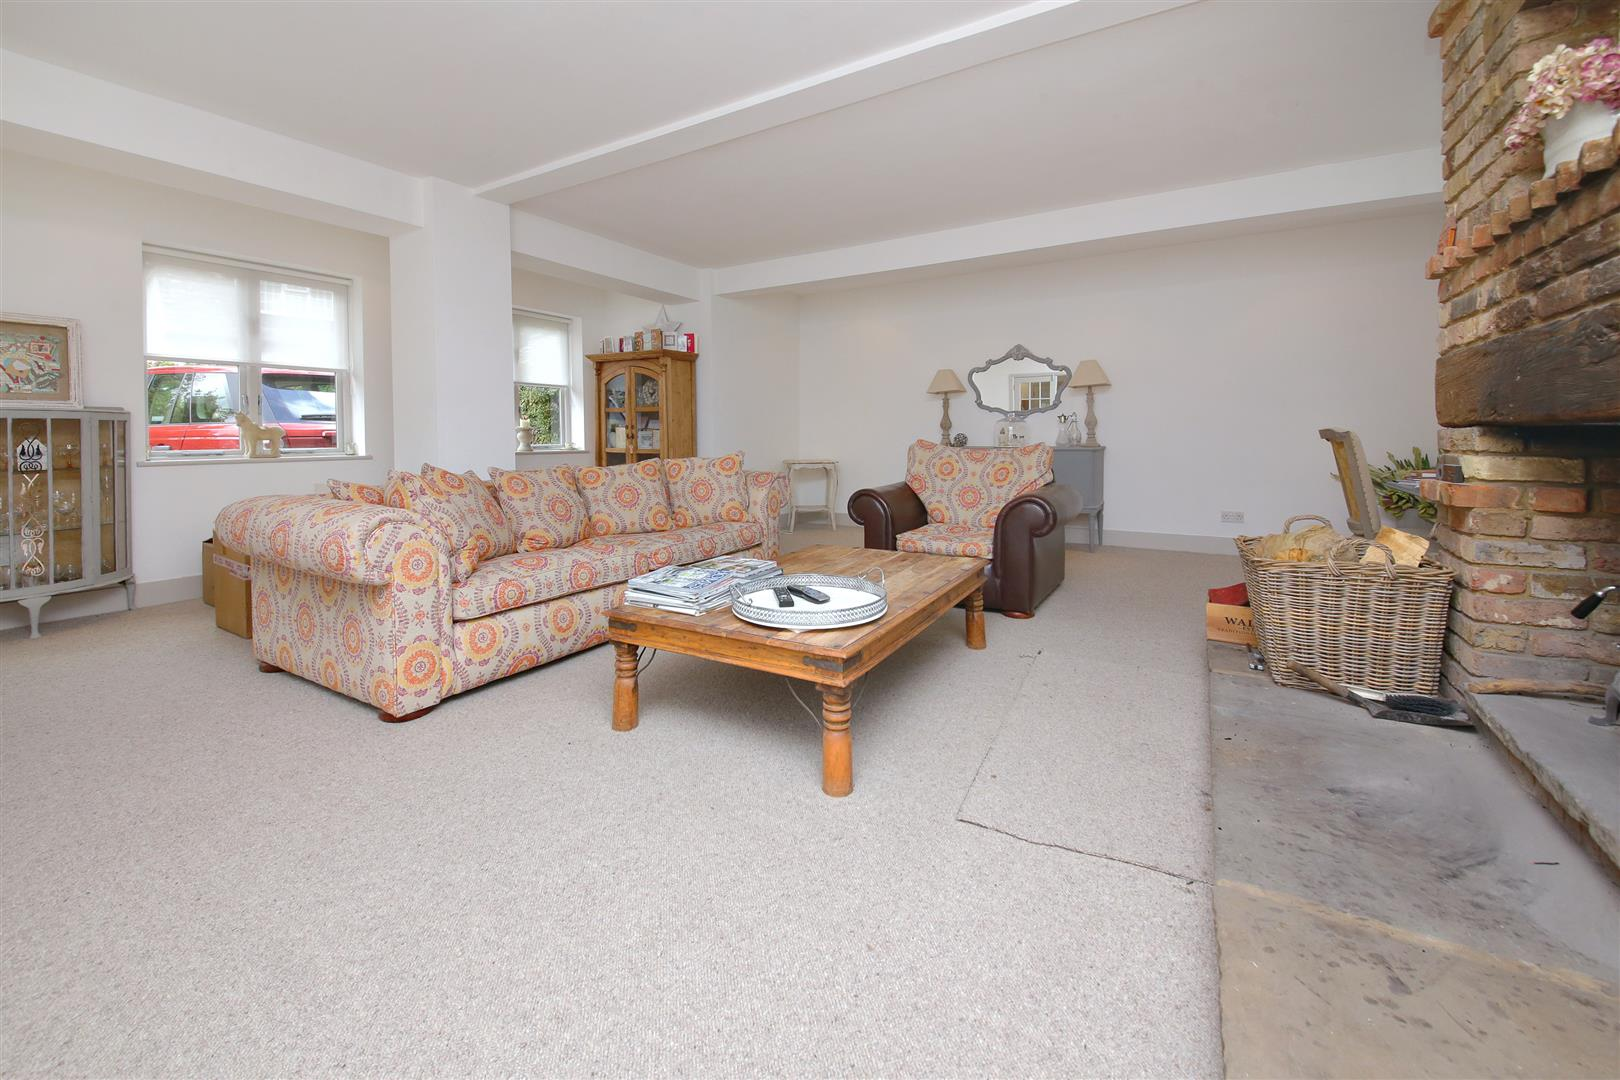 5 bed to rent in Letchmore Heath - (Property Image 3)